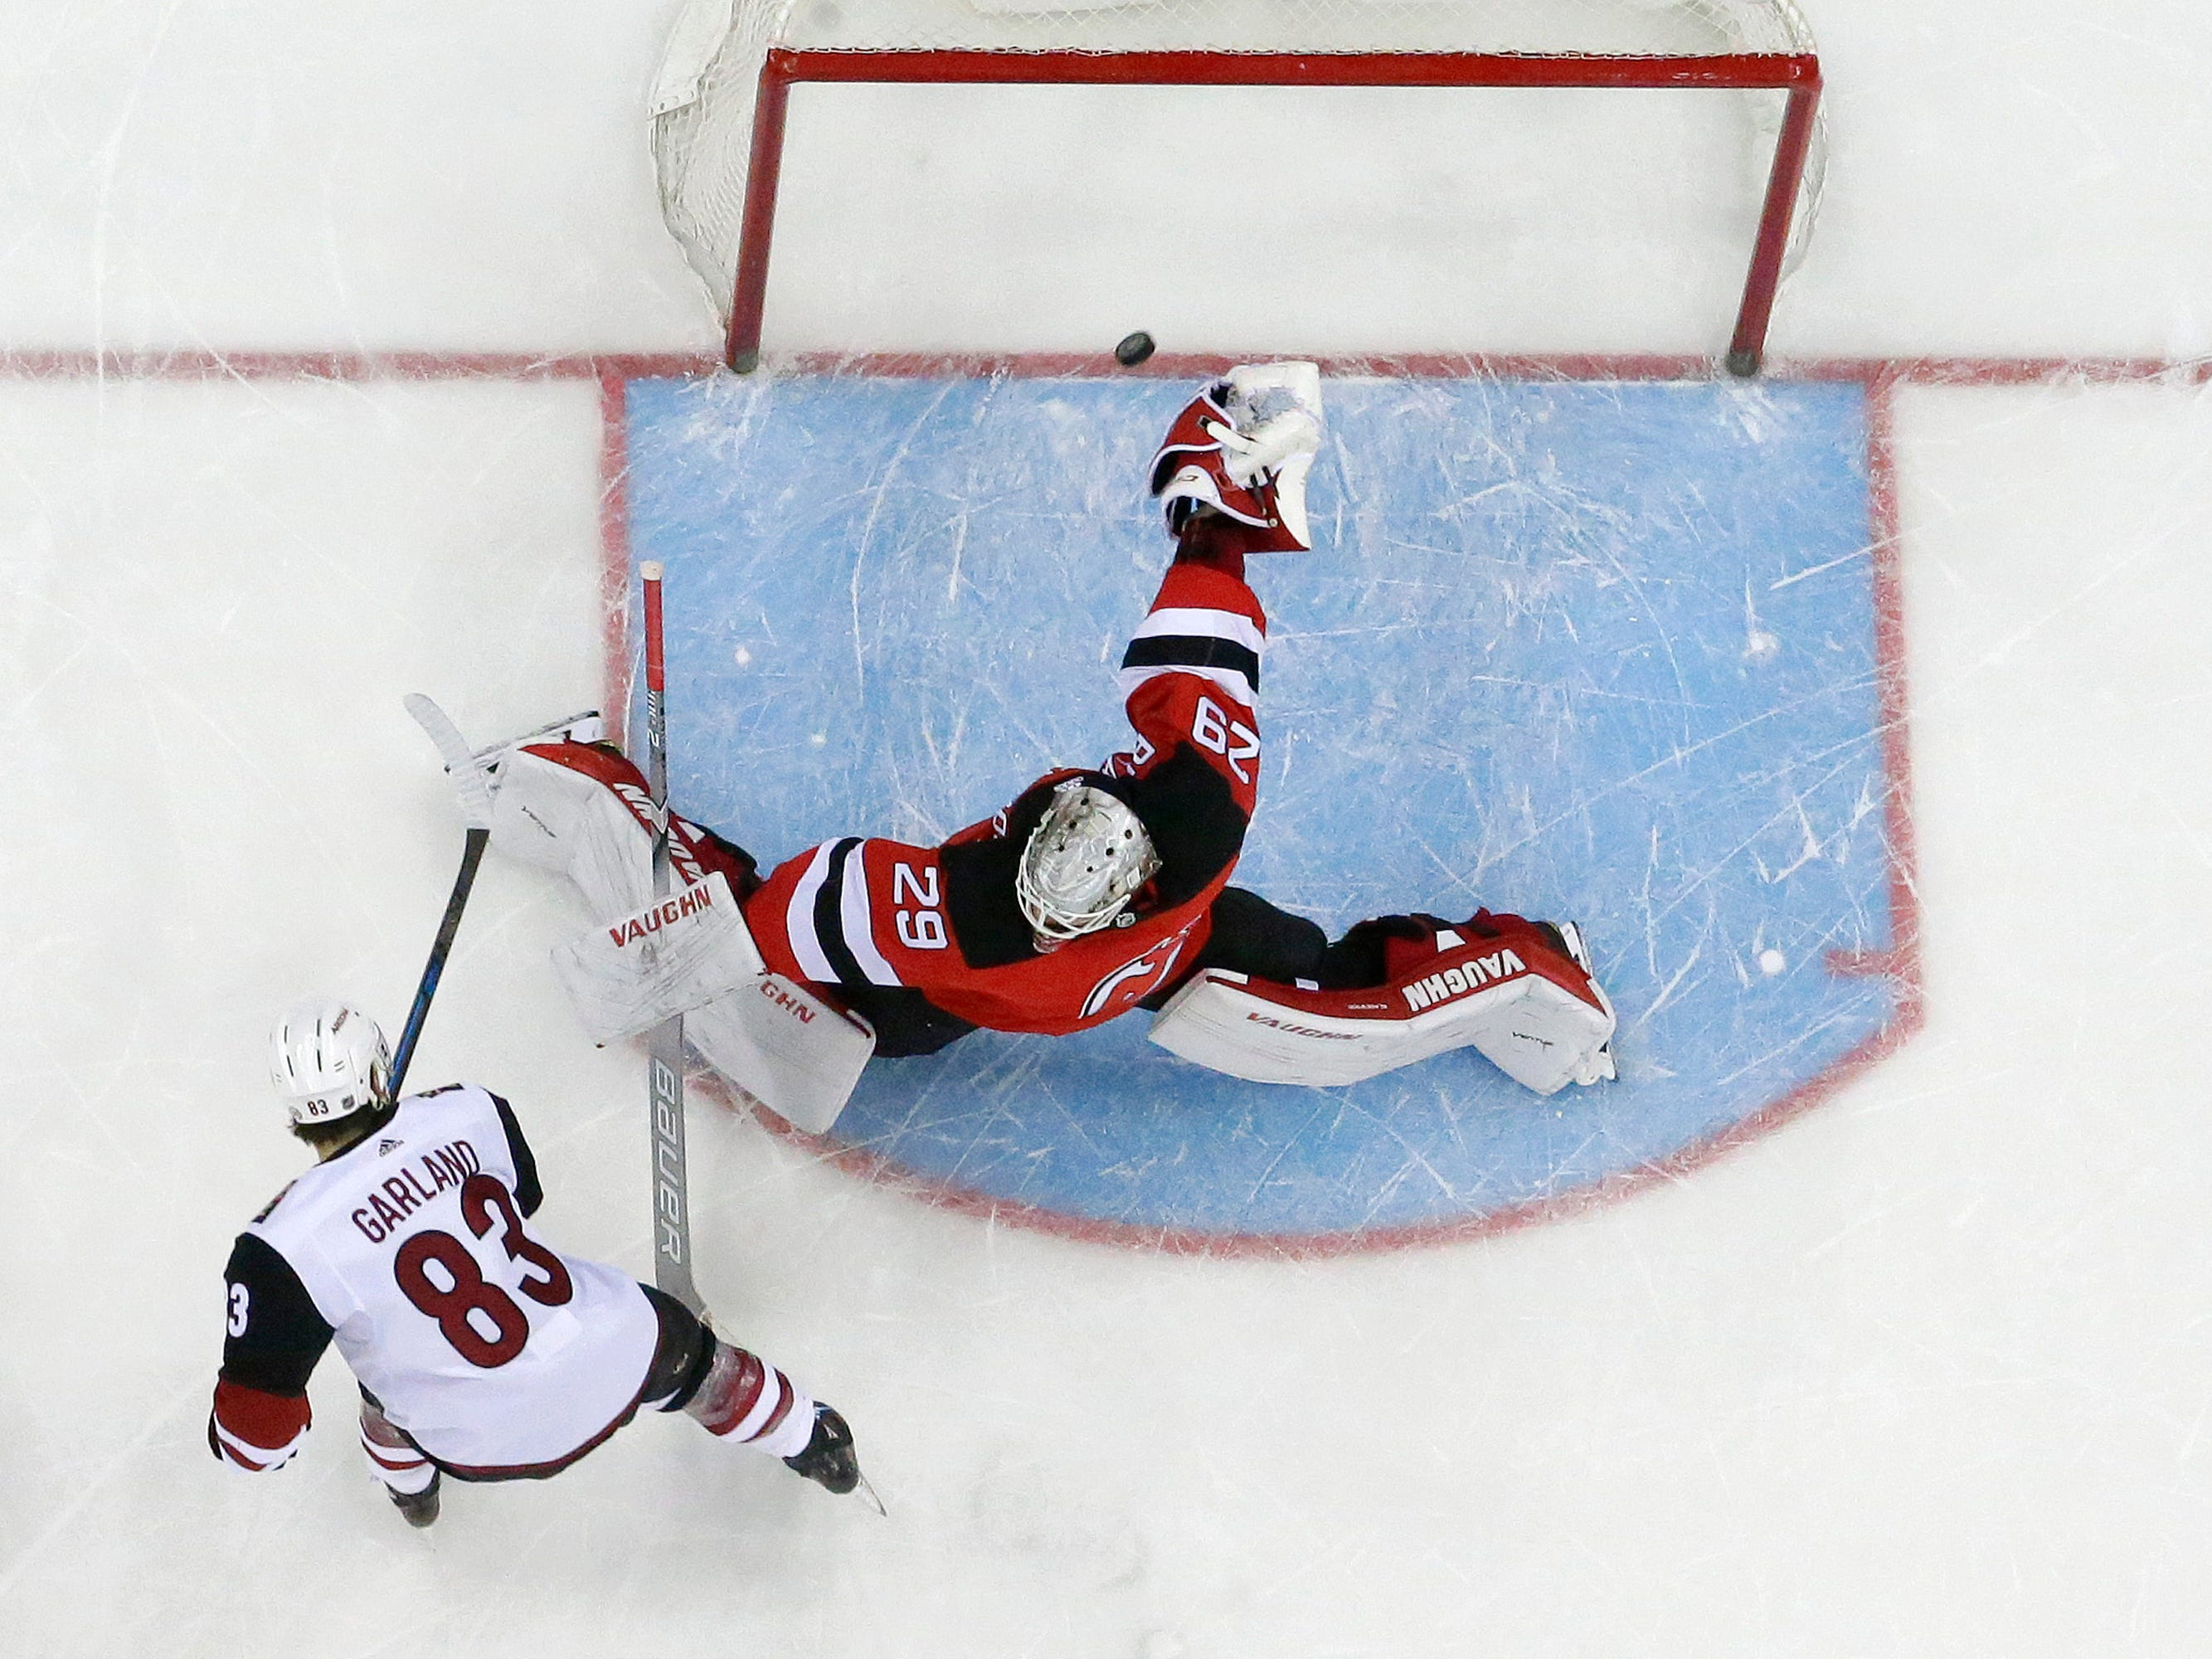 Arizona Coyotes right wing Conor Garland (83) scores a shootout goal on New Jersey Devils goaltender MacKenzie Blackwood (29) during during an NHL hockey game, Saturday, March 23, 2019, in Newark, N.J. The Devils on 2-1 in a shootout.